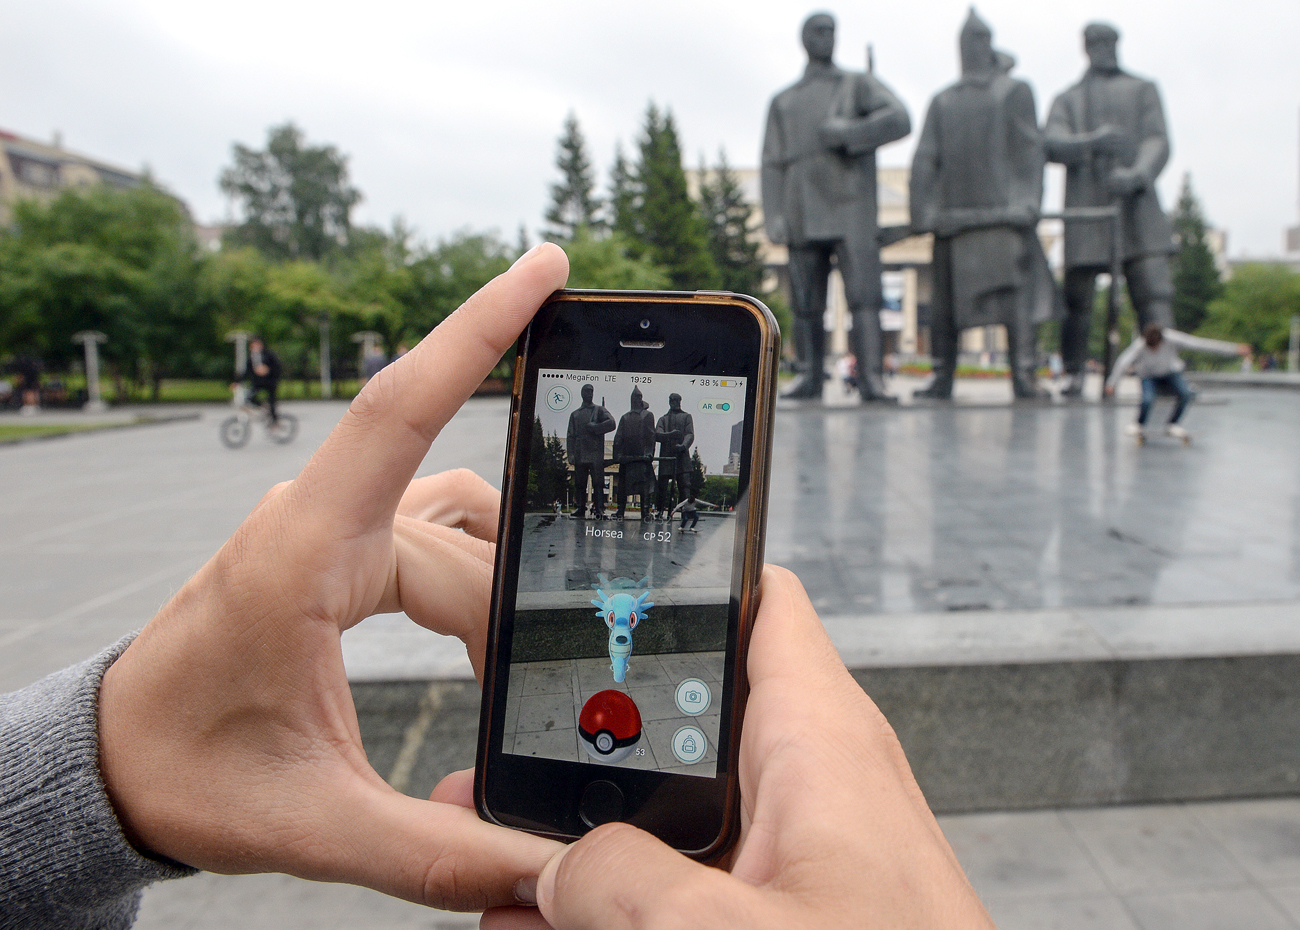 Pokémon Go, the mobile game from Nintendo, on their mobile phones in the park across the street from the Novosibirsk's Opera and Ballet Theater.